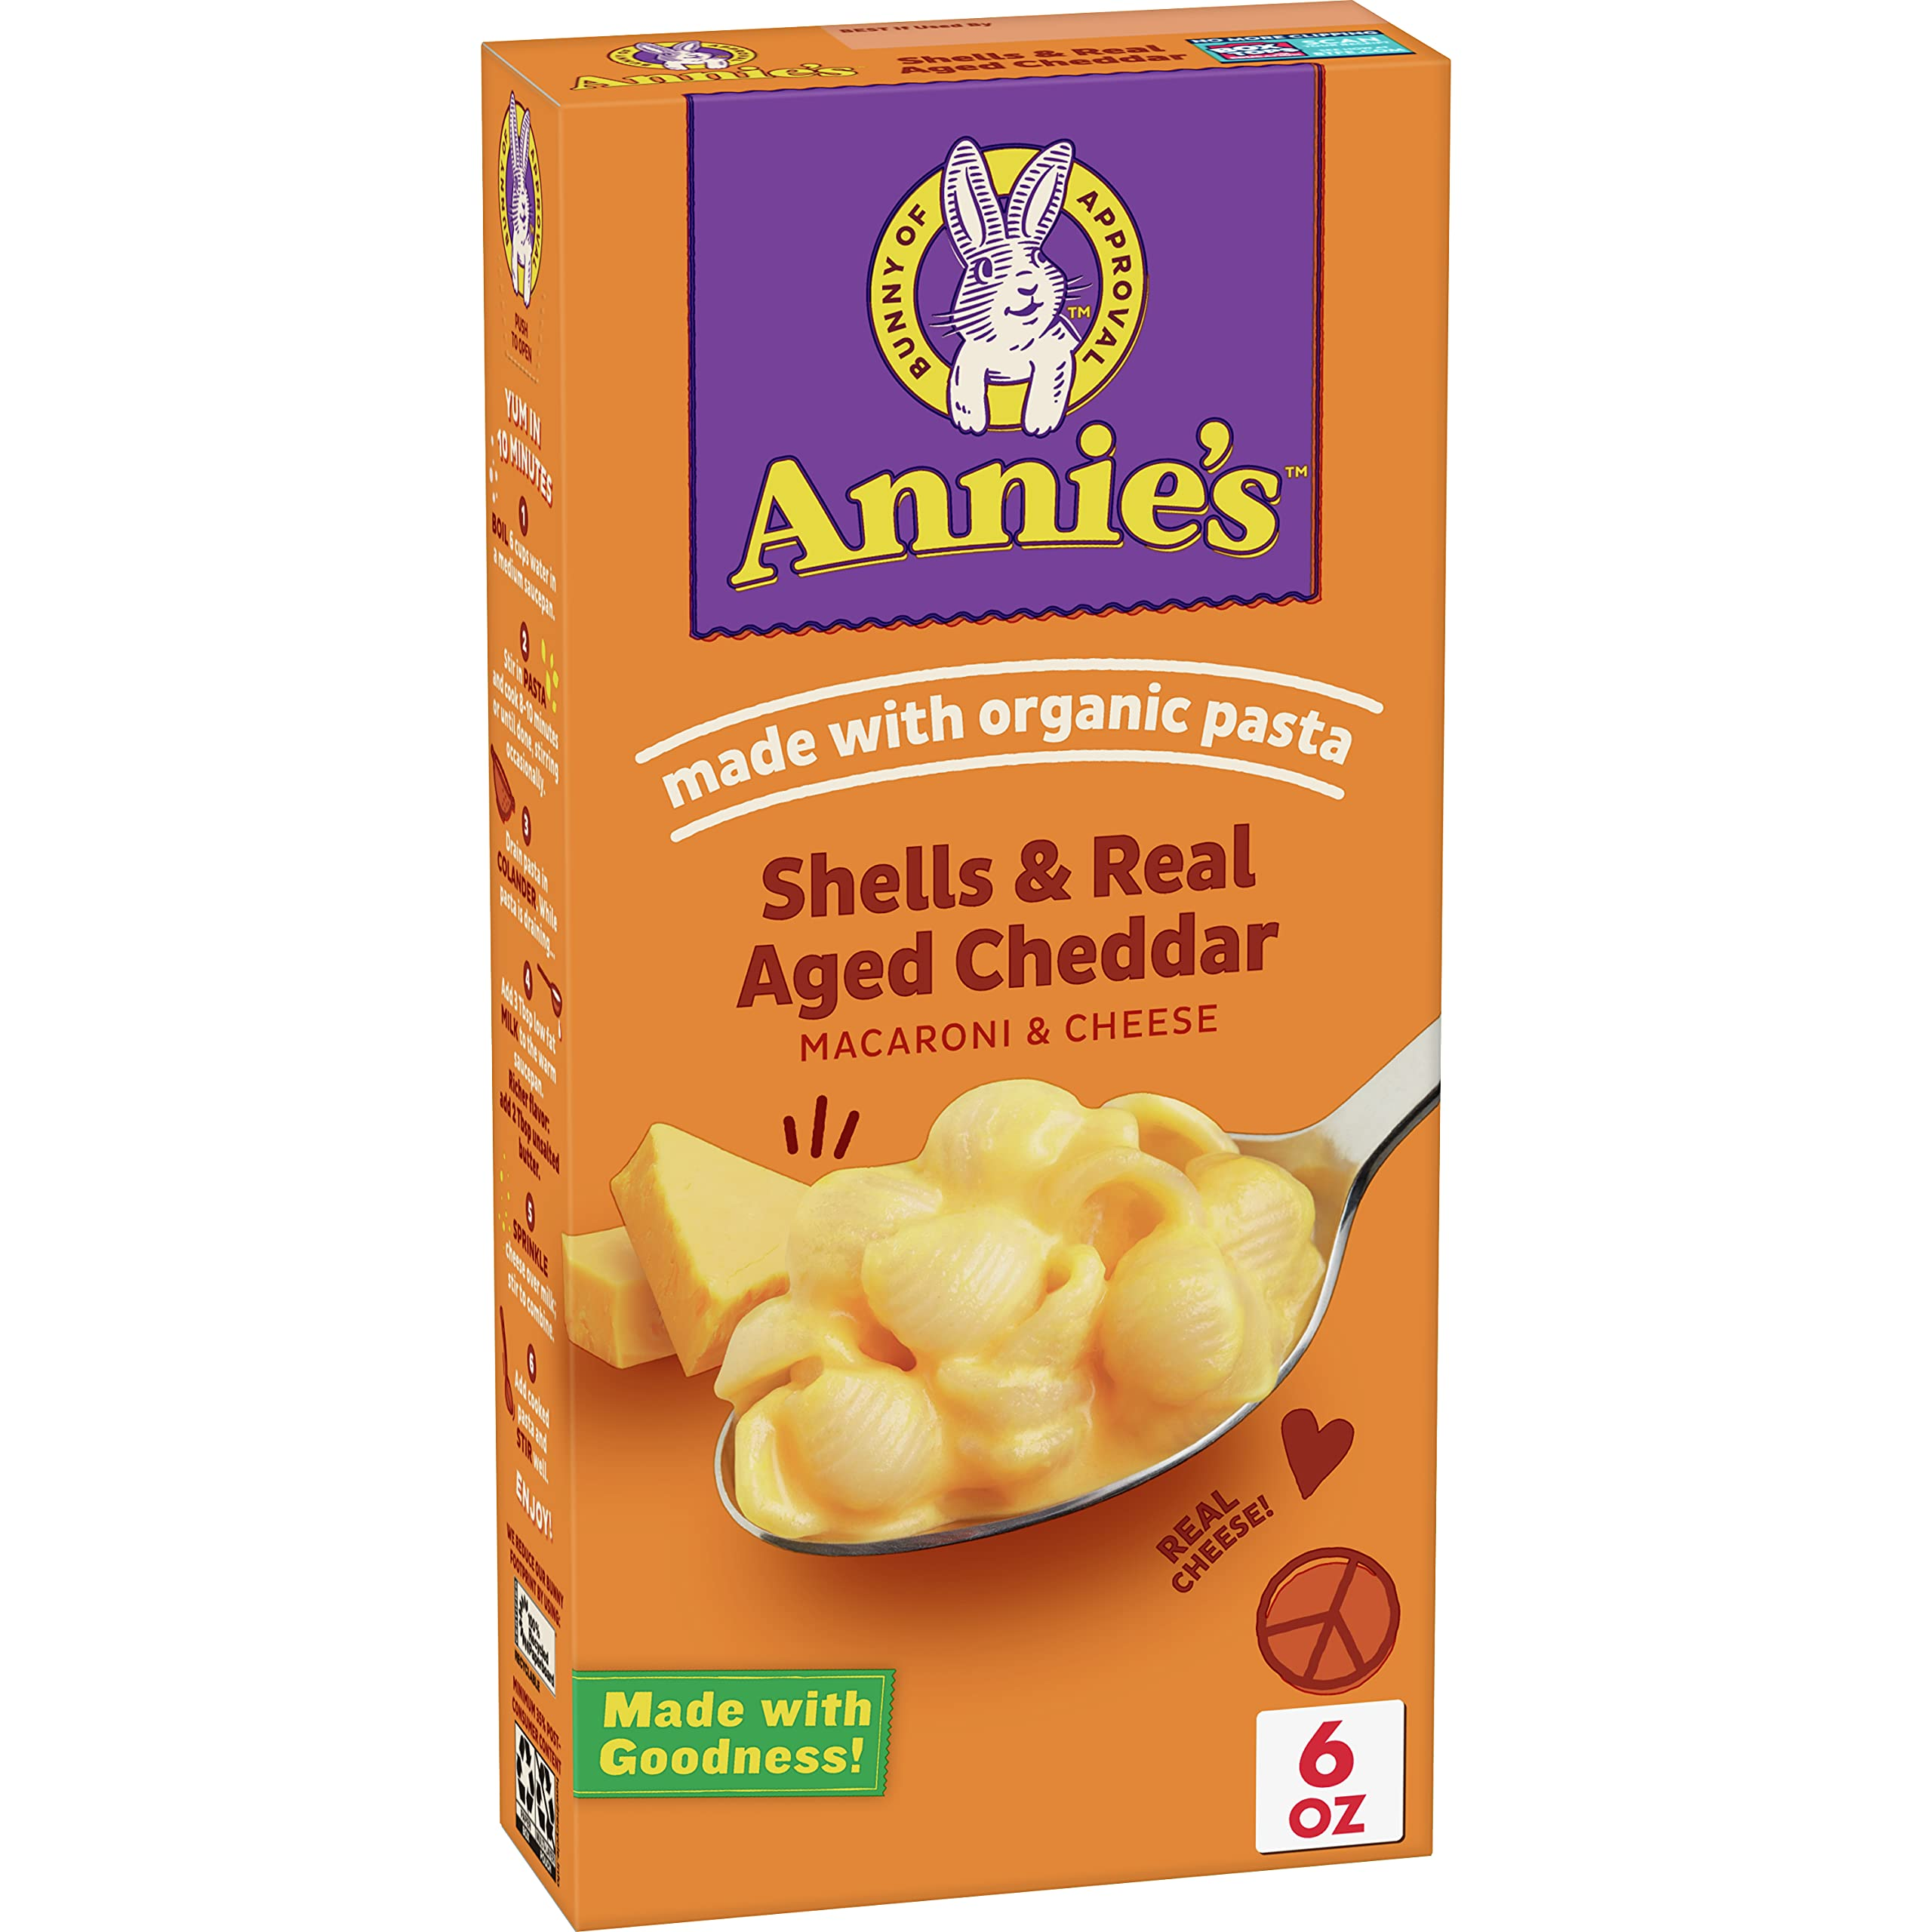 Annie's Shells & Aged Cheddar Macaroni and Cheese, Mac and Cheese, 6 oz